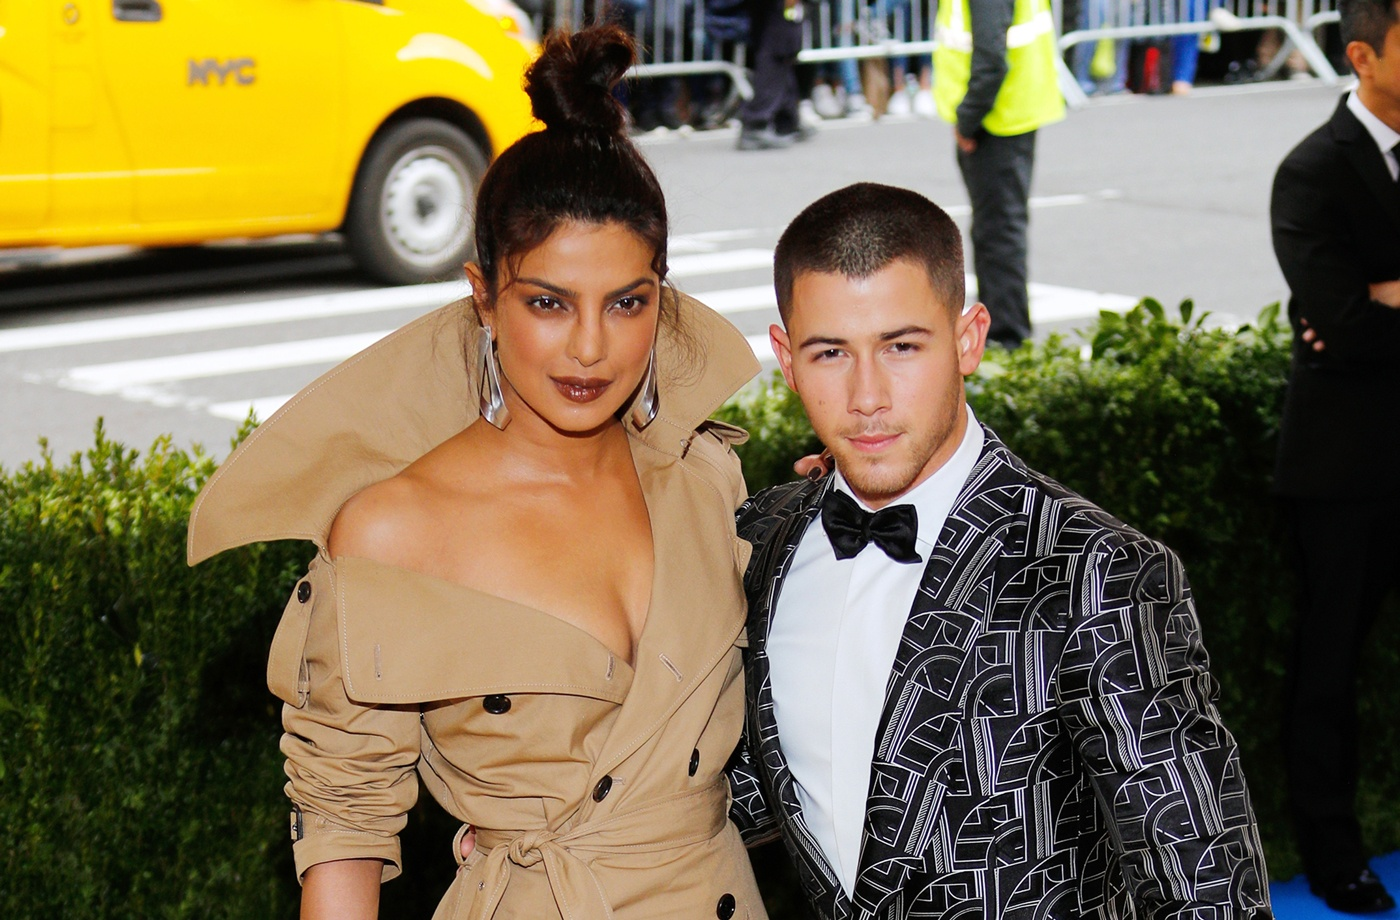 Thumbnail for Now Nick Jonas and Priyanka Chopra? Speedy engagements are *definitely* the new summer fling